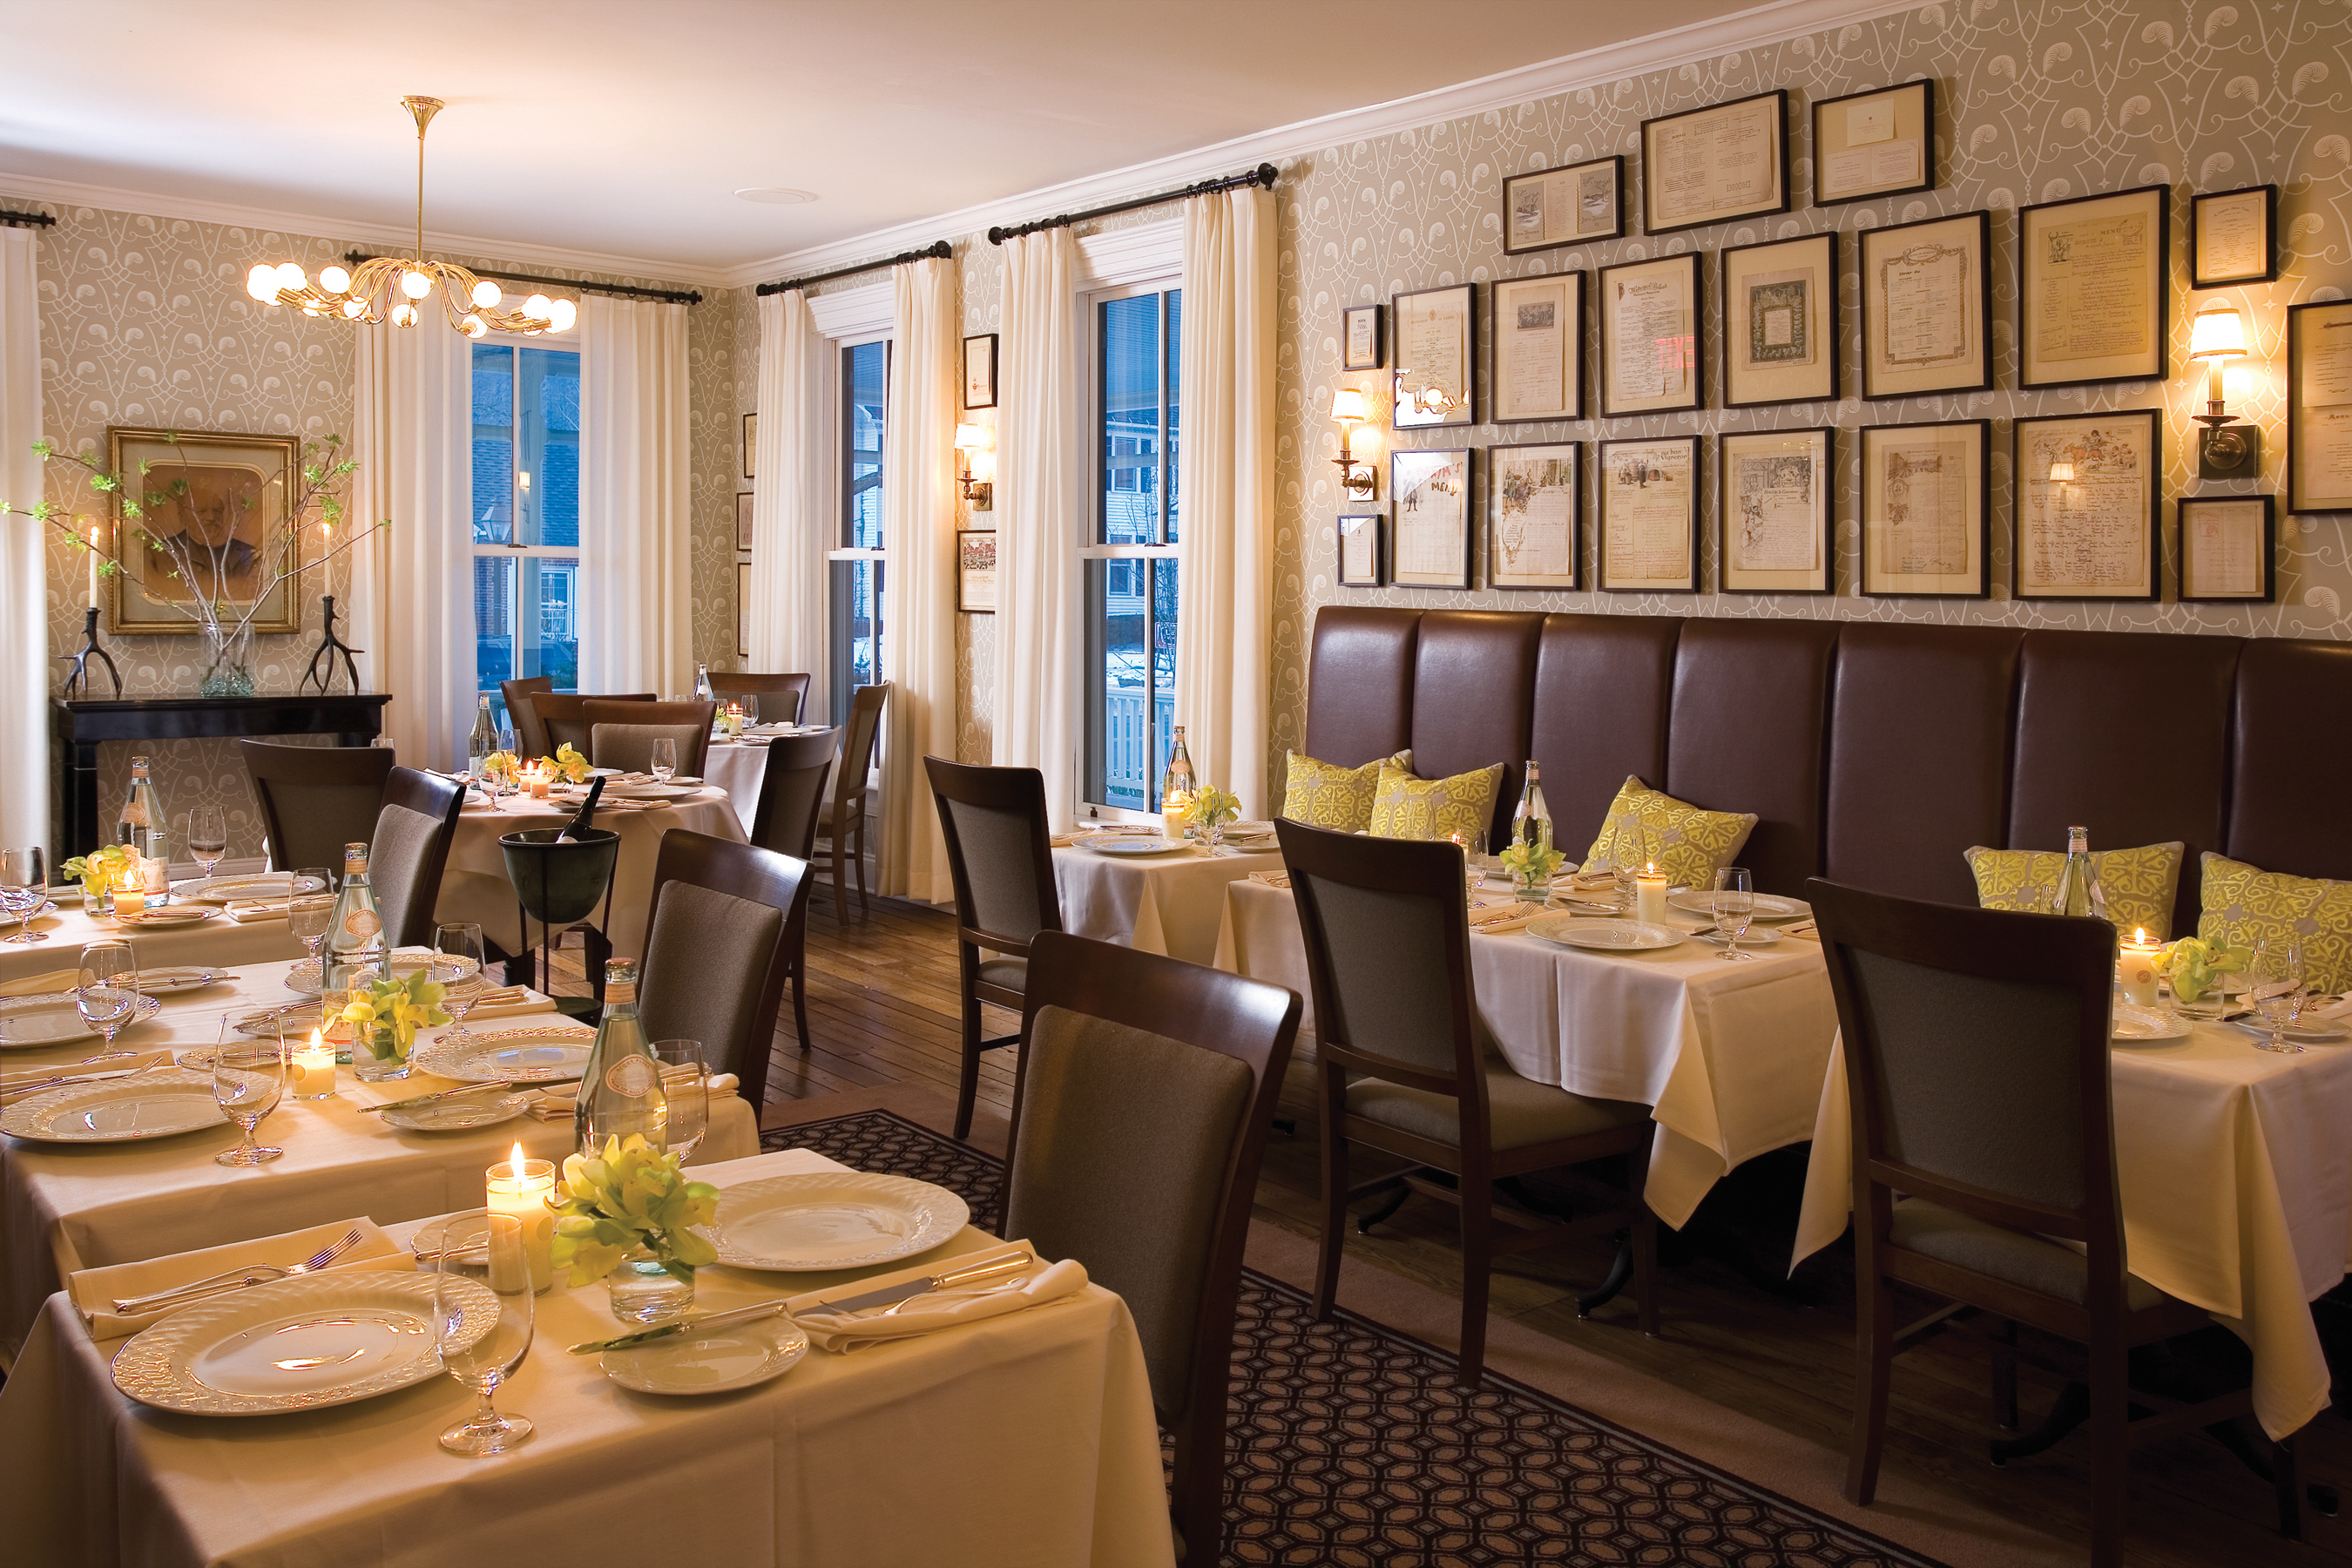 On-site dining available at The Delmonico Room, featuring fine regional American cuisine.